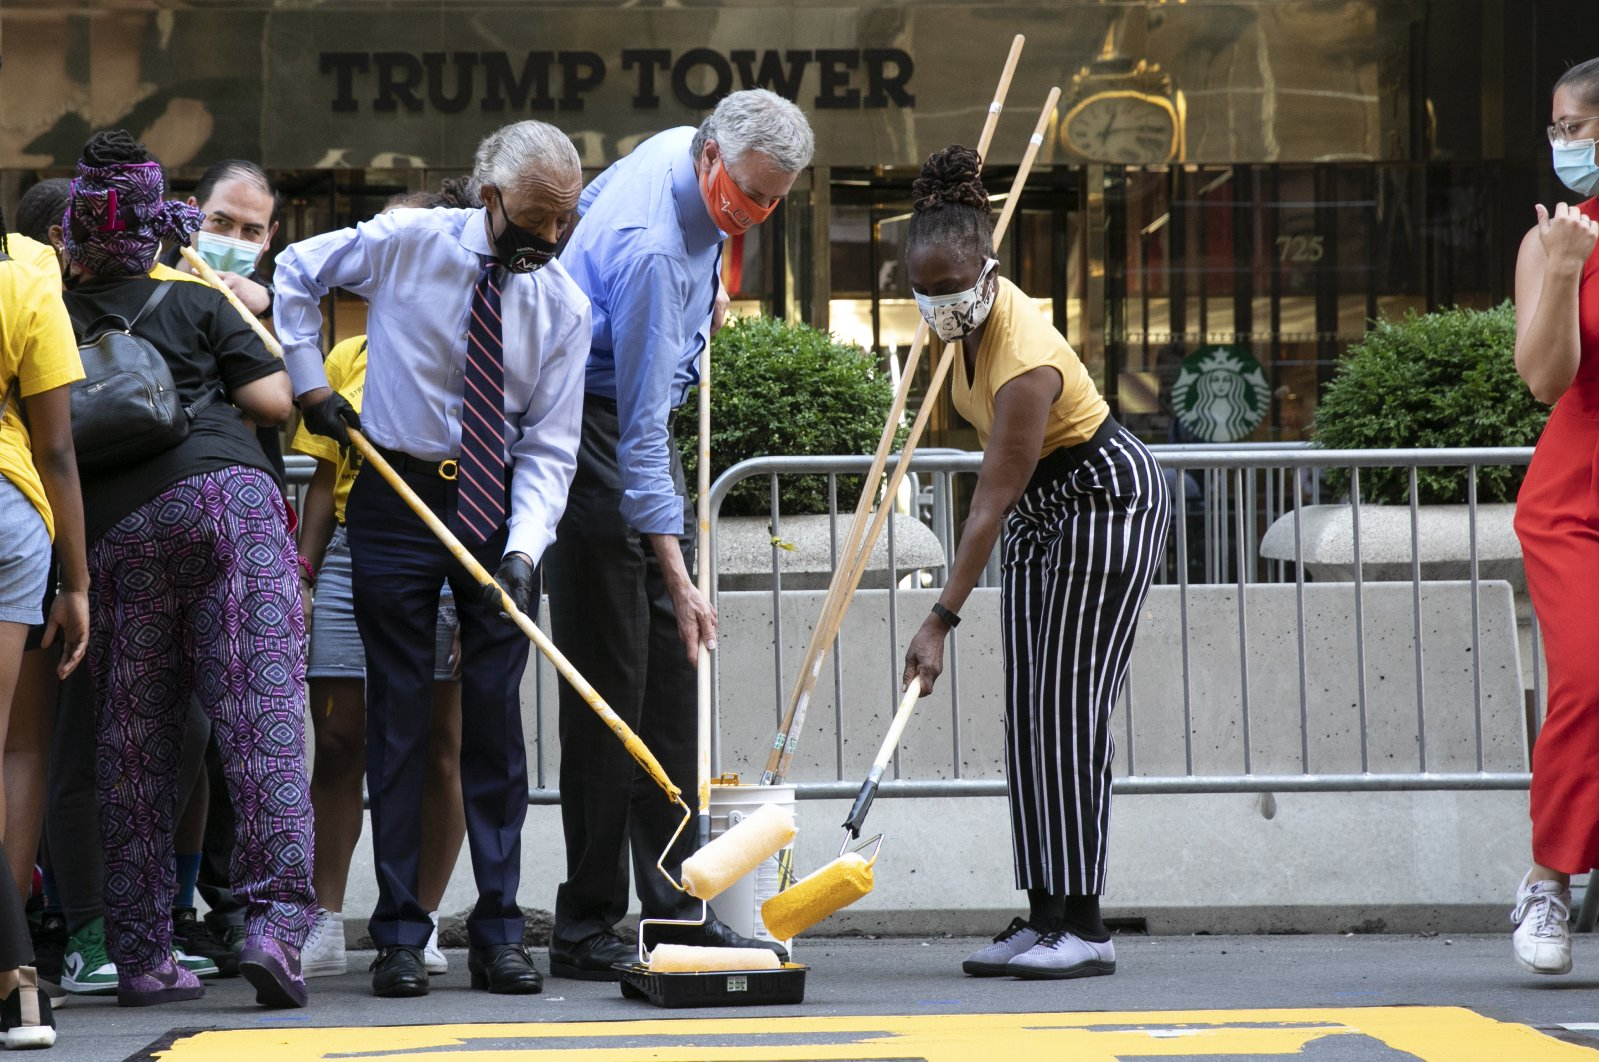 Mayor Bill de Blasio, center, is joined by Rev. Al Sharpton, left, and the mayor's wife Chirlane McCray, as they prepare to paint Black Lives Matter on Fifth Avenue in front of Trump Tower, Thursday, July 9, 2020, in New York. (AP Photo)